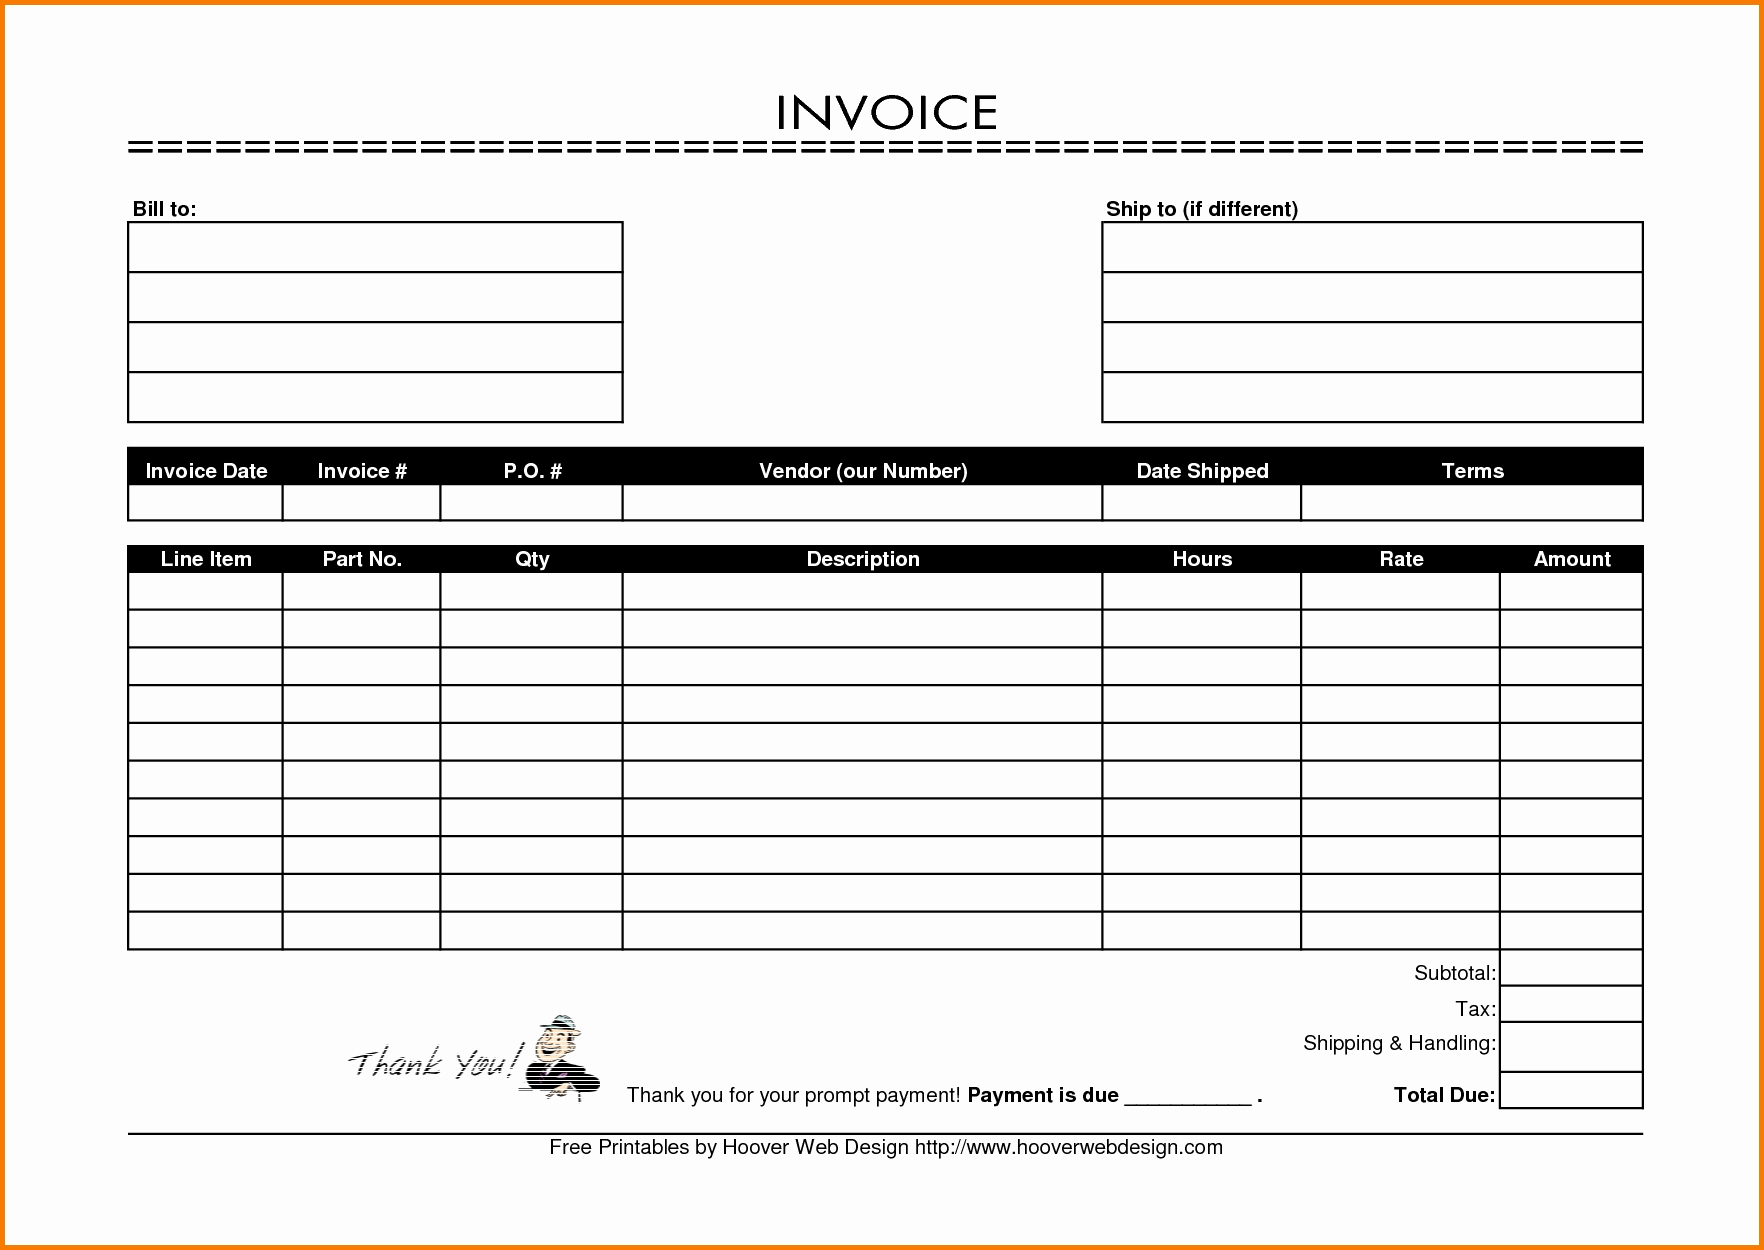 Printable Online Invoice Forms Free Printable Blank Invoice Forms Invoice Template Ideas